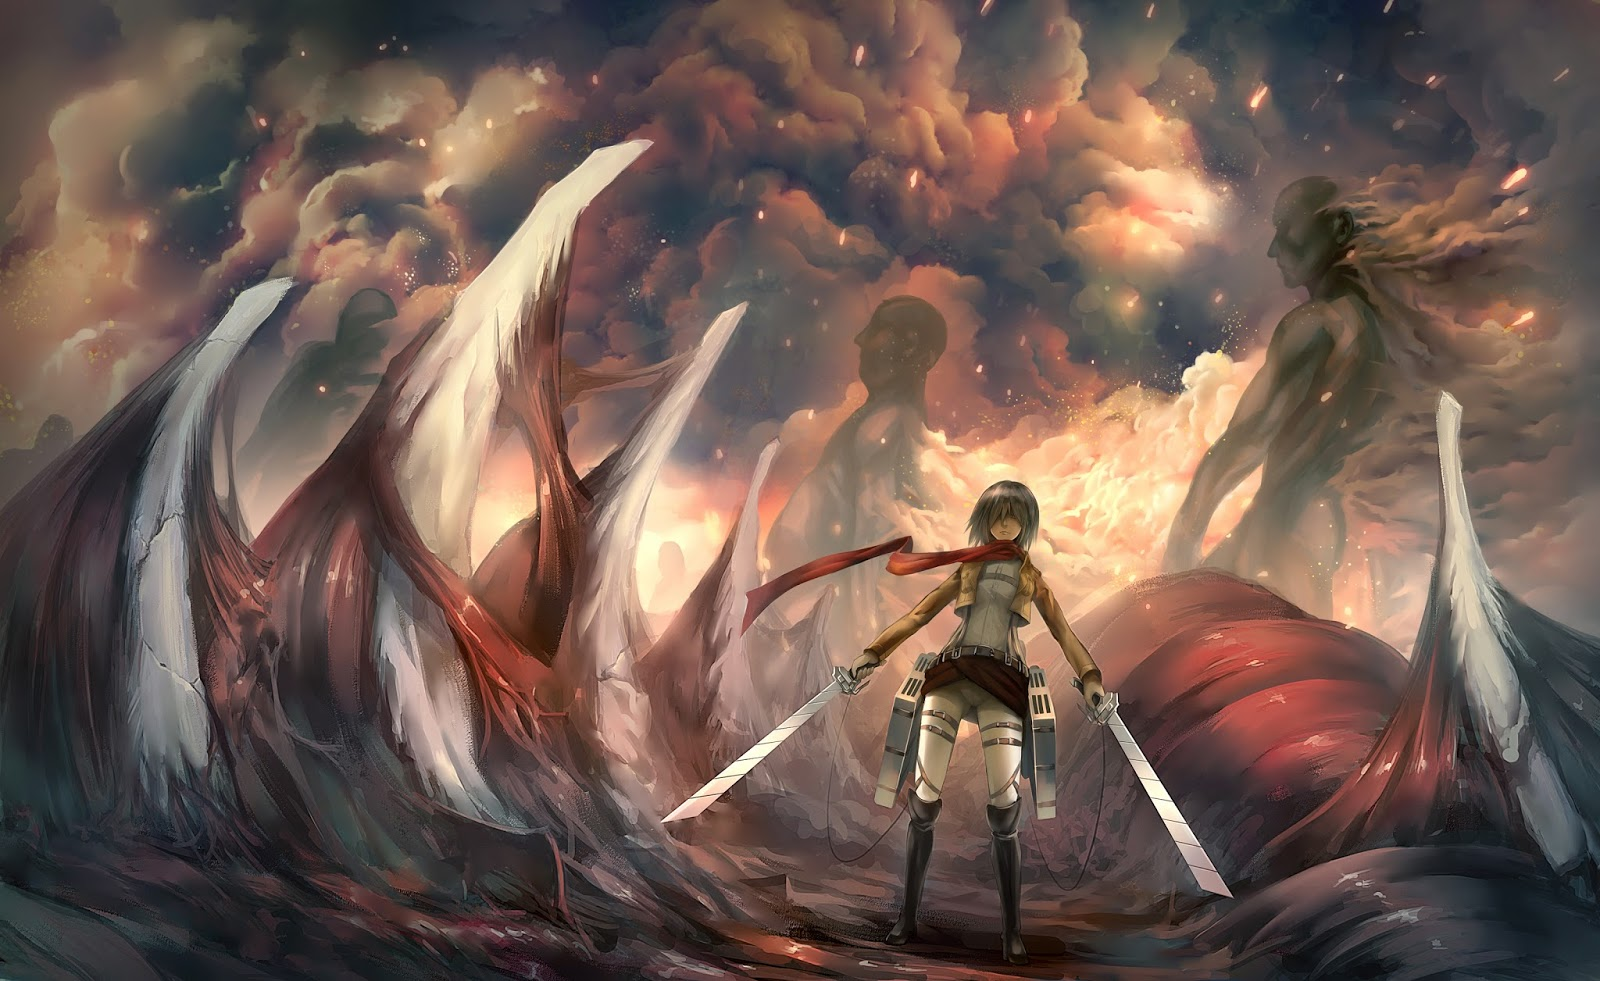 Epic Anime Wallpapers HD - WallpaperSafari